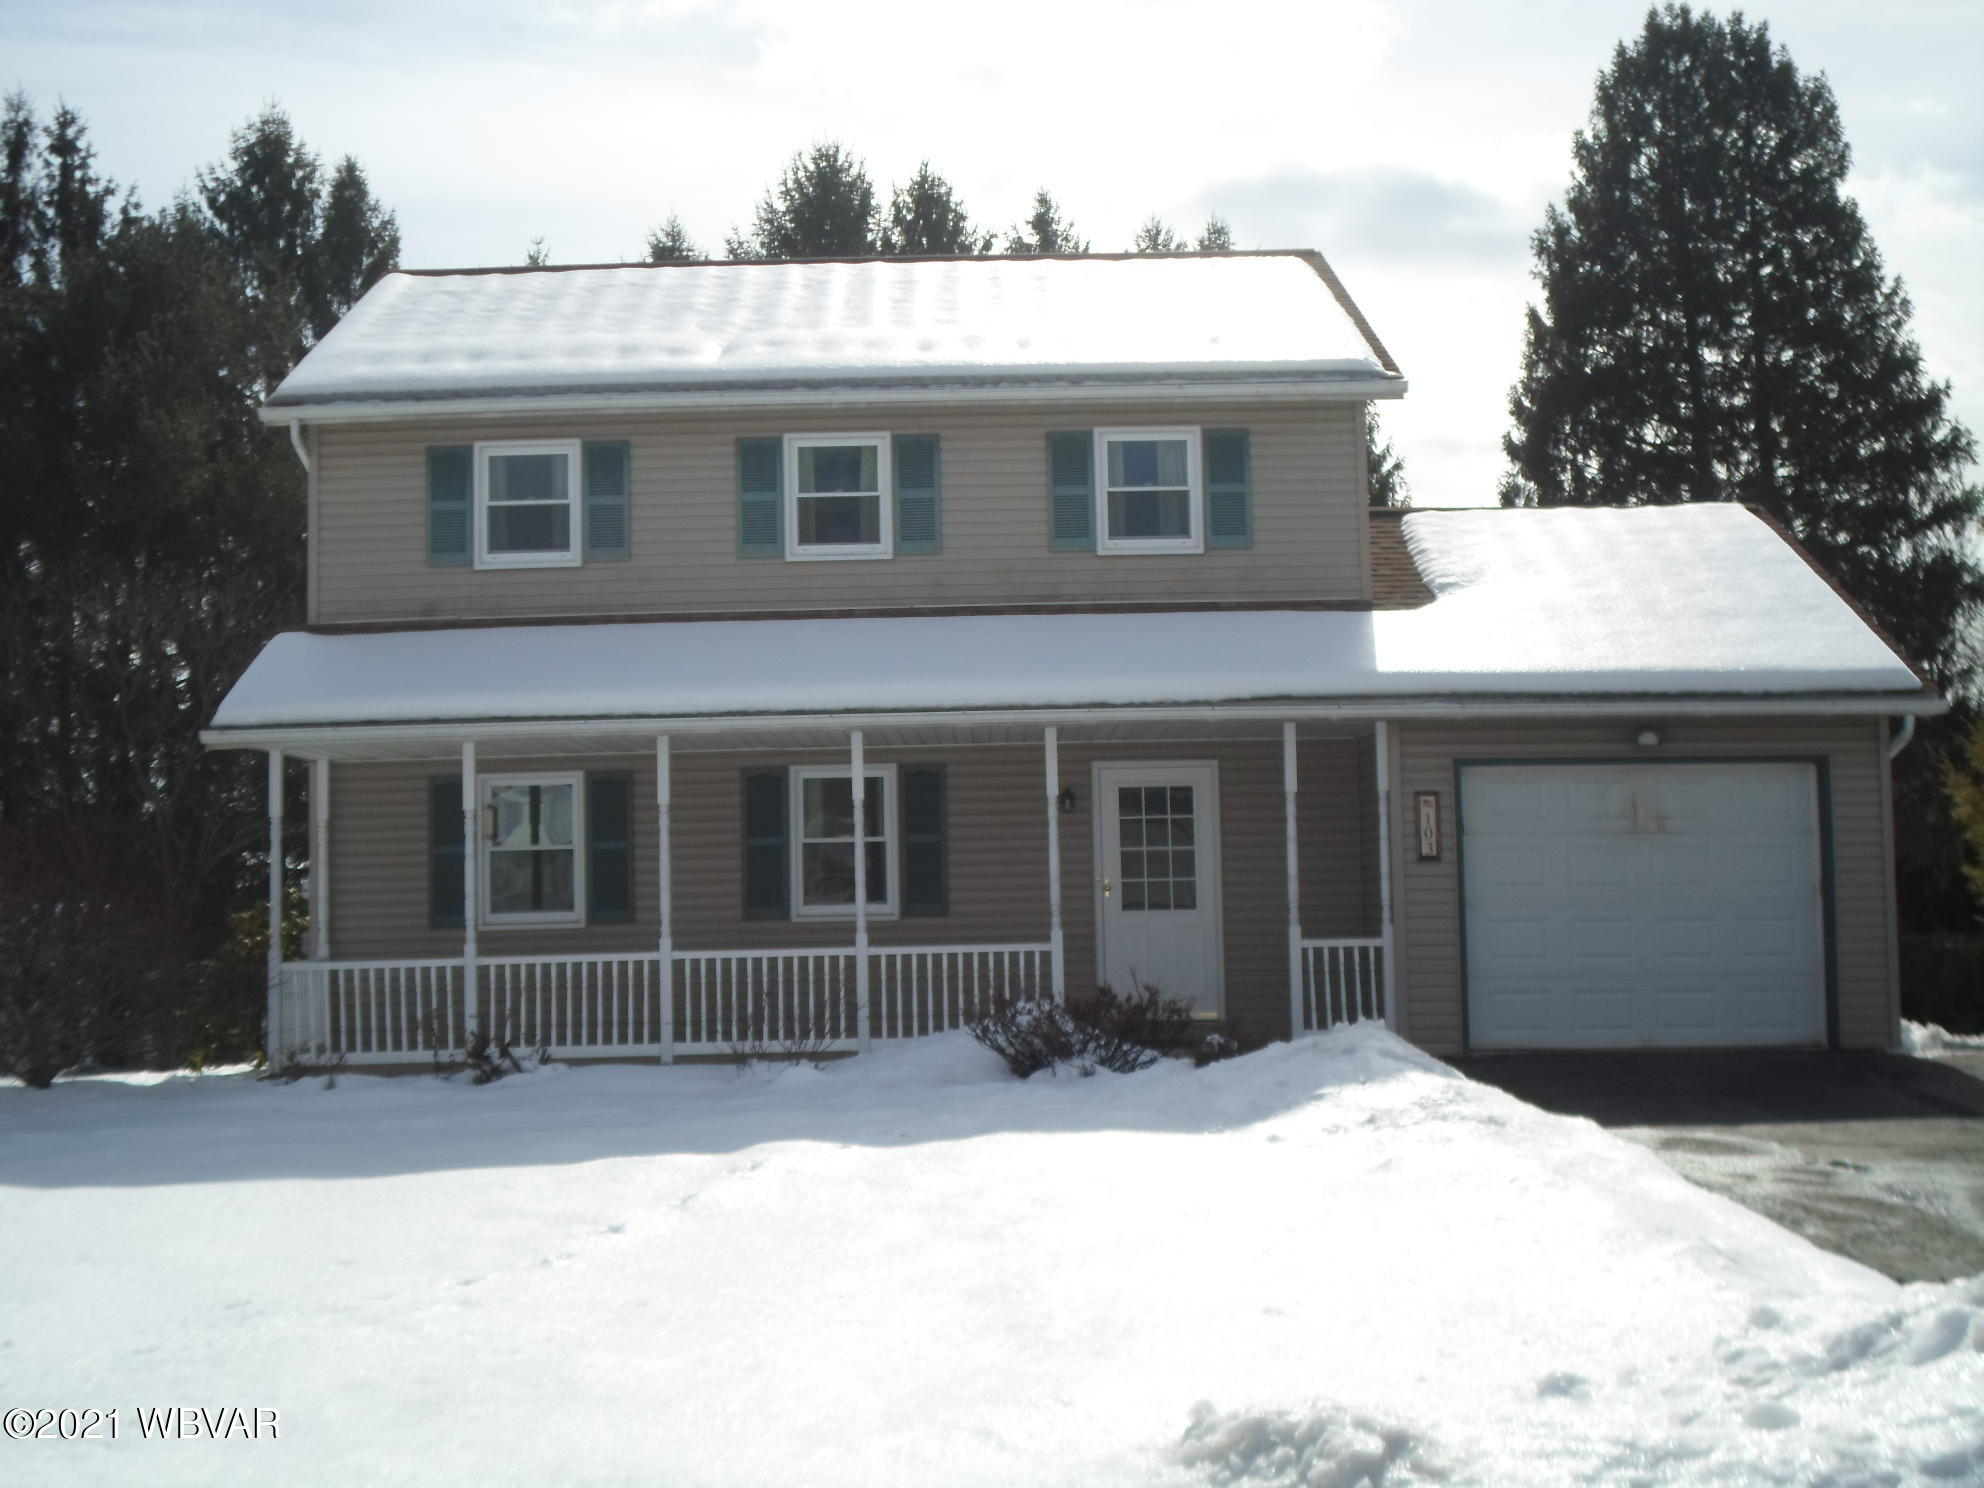 103 TIFFANY DRIVE, Williamsport, PA 17701, 3 Bedrooms Bedrooms, ,3 BathroomsBathrooms,Residential,For sale,TIFFANY,WB-91912